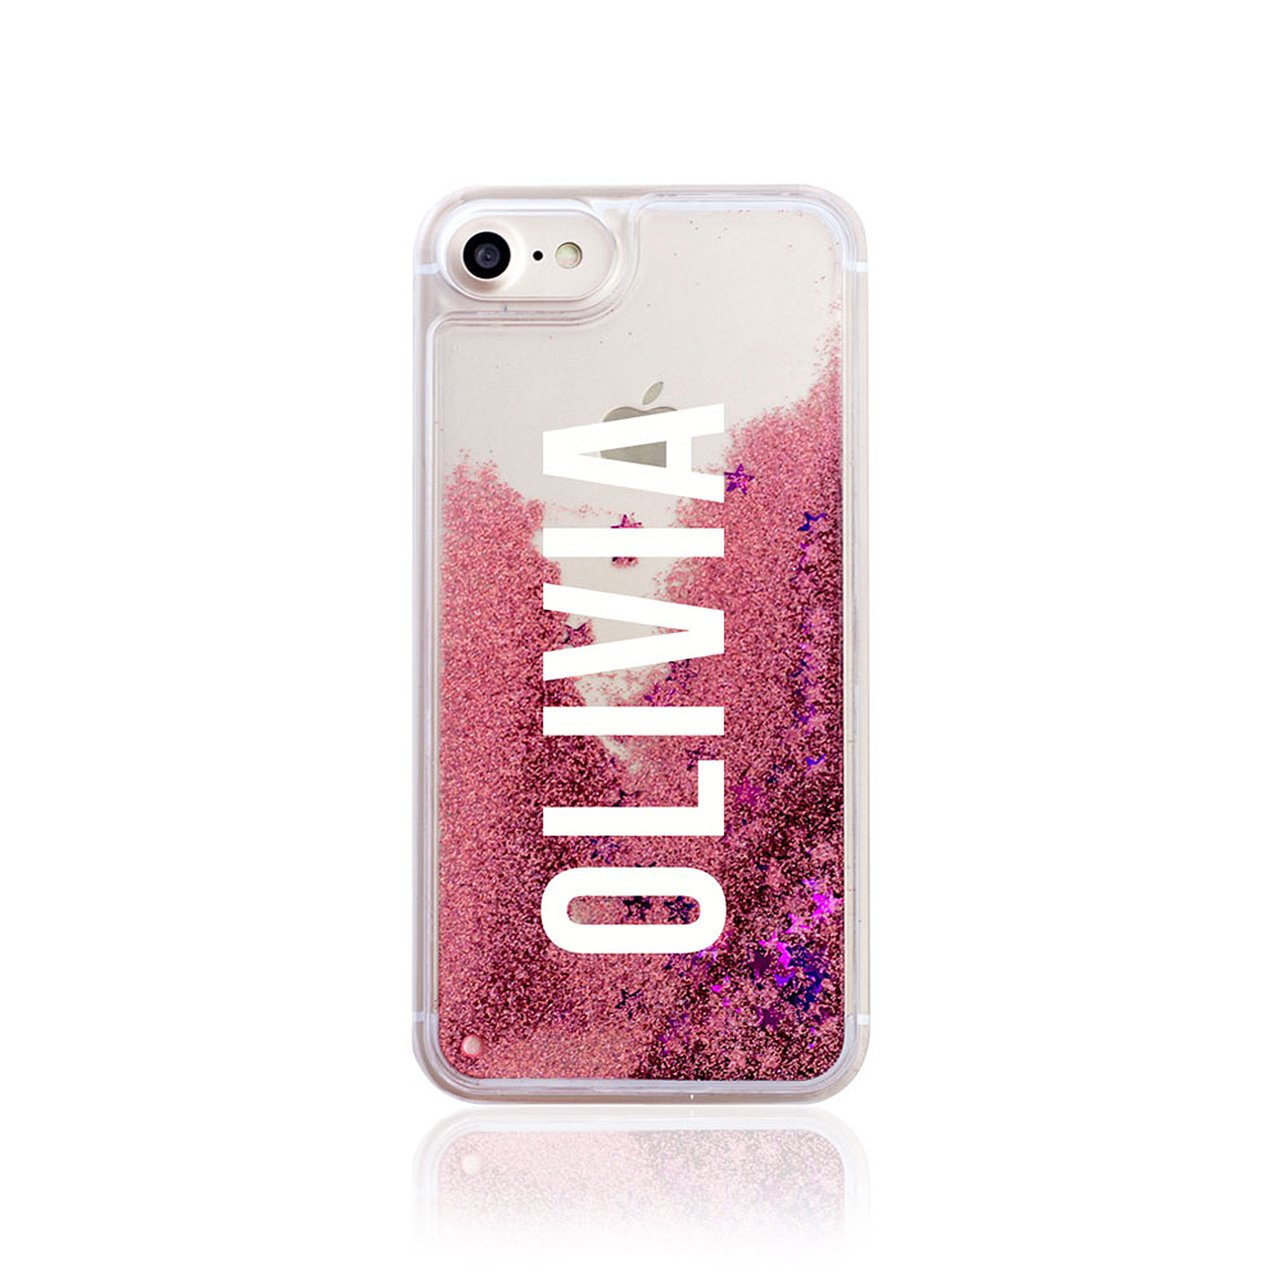 iphone 6 case personalised sw